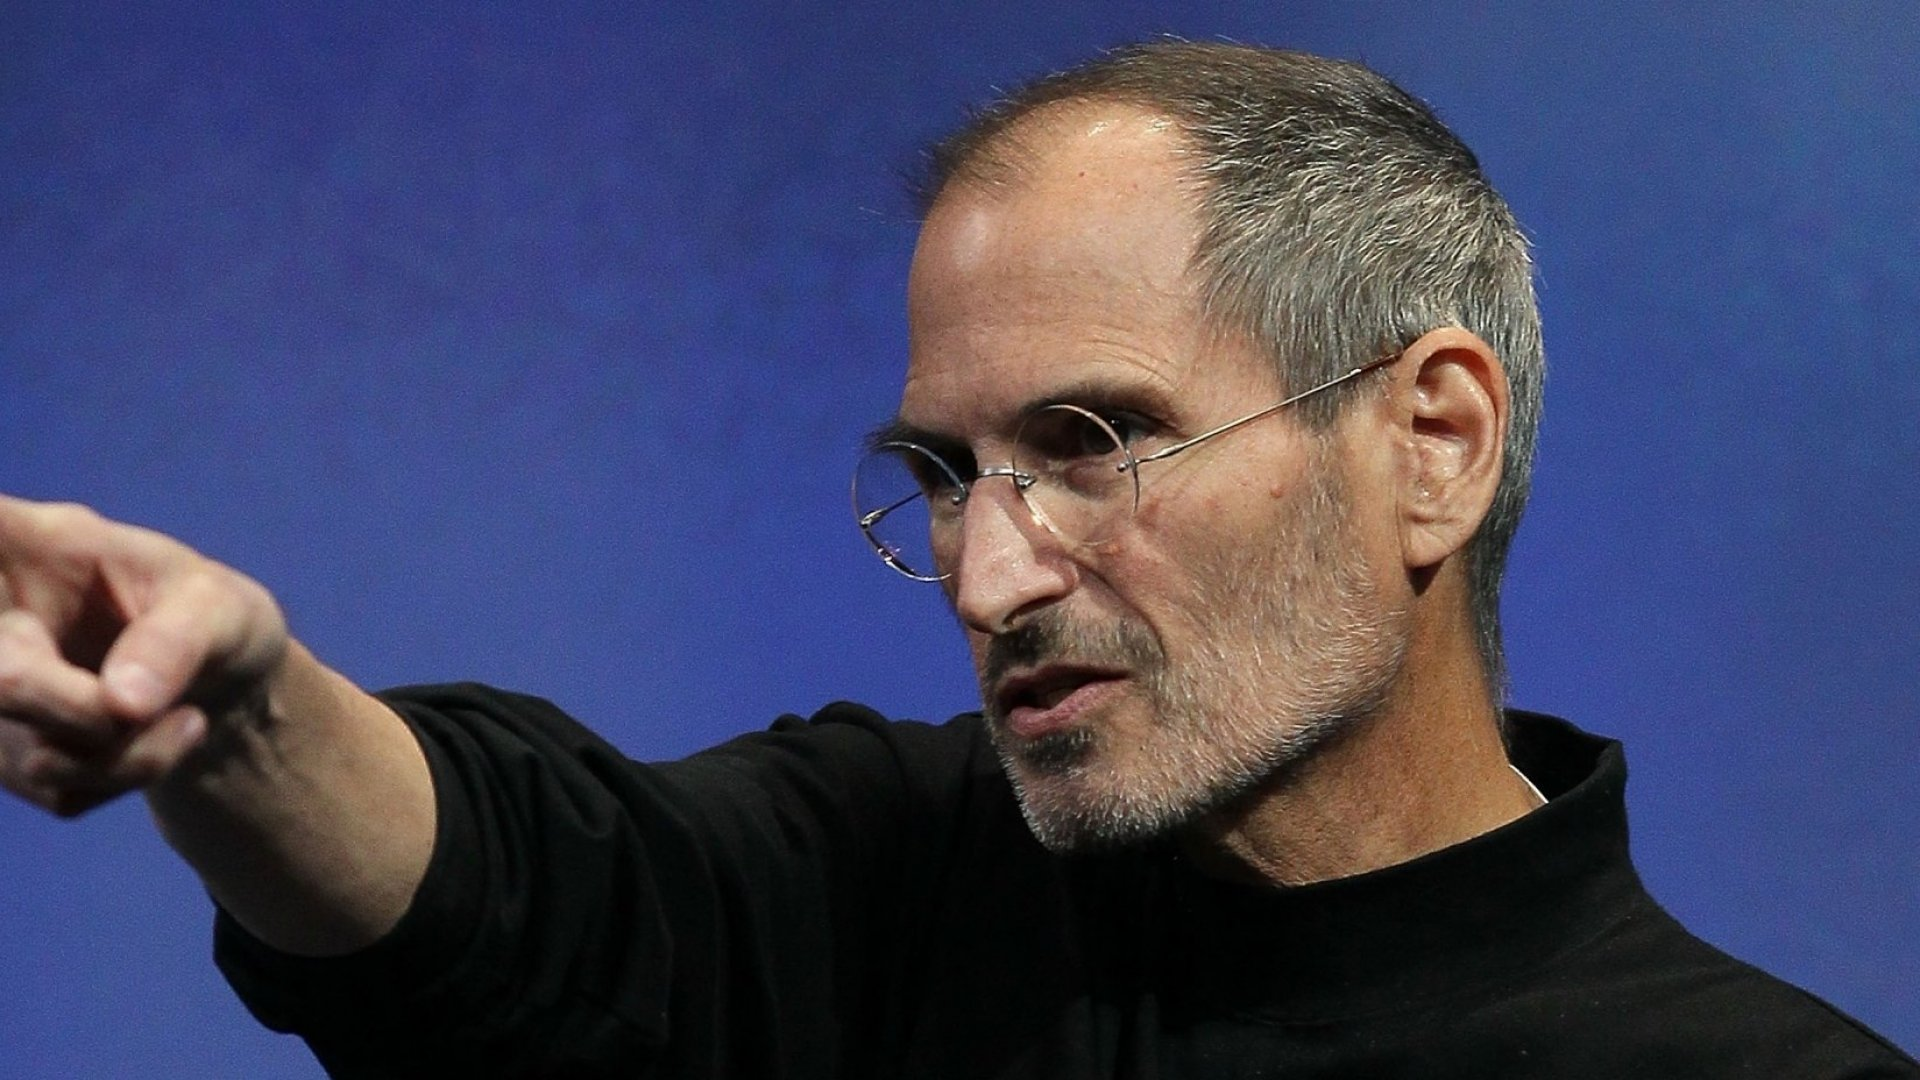 Steve Jobs's Management Style: Abusive or Motivational?